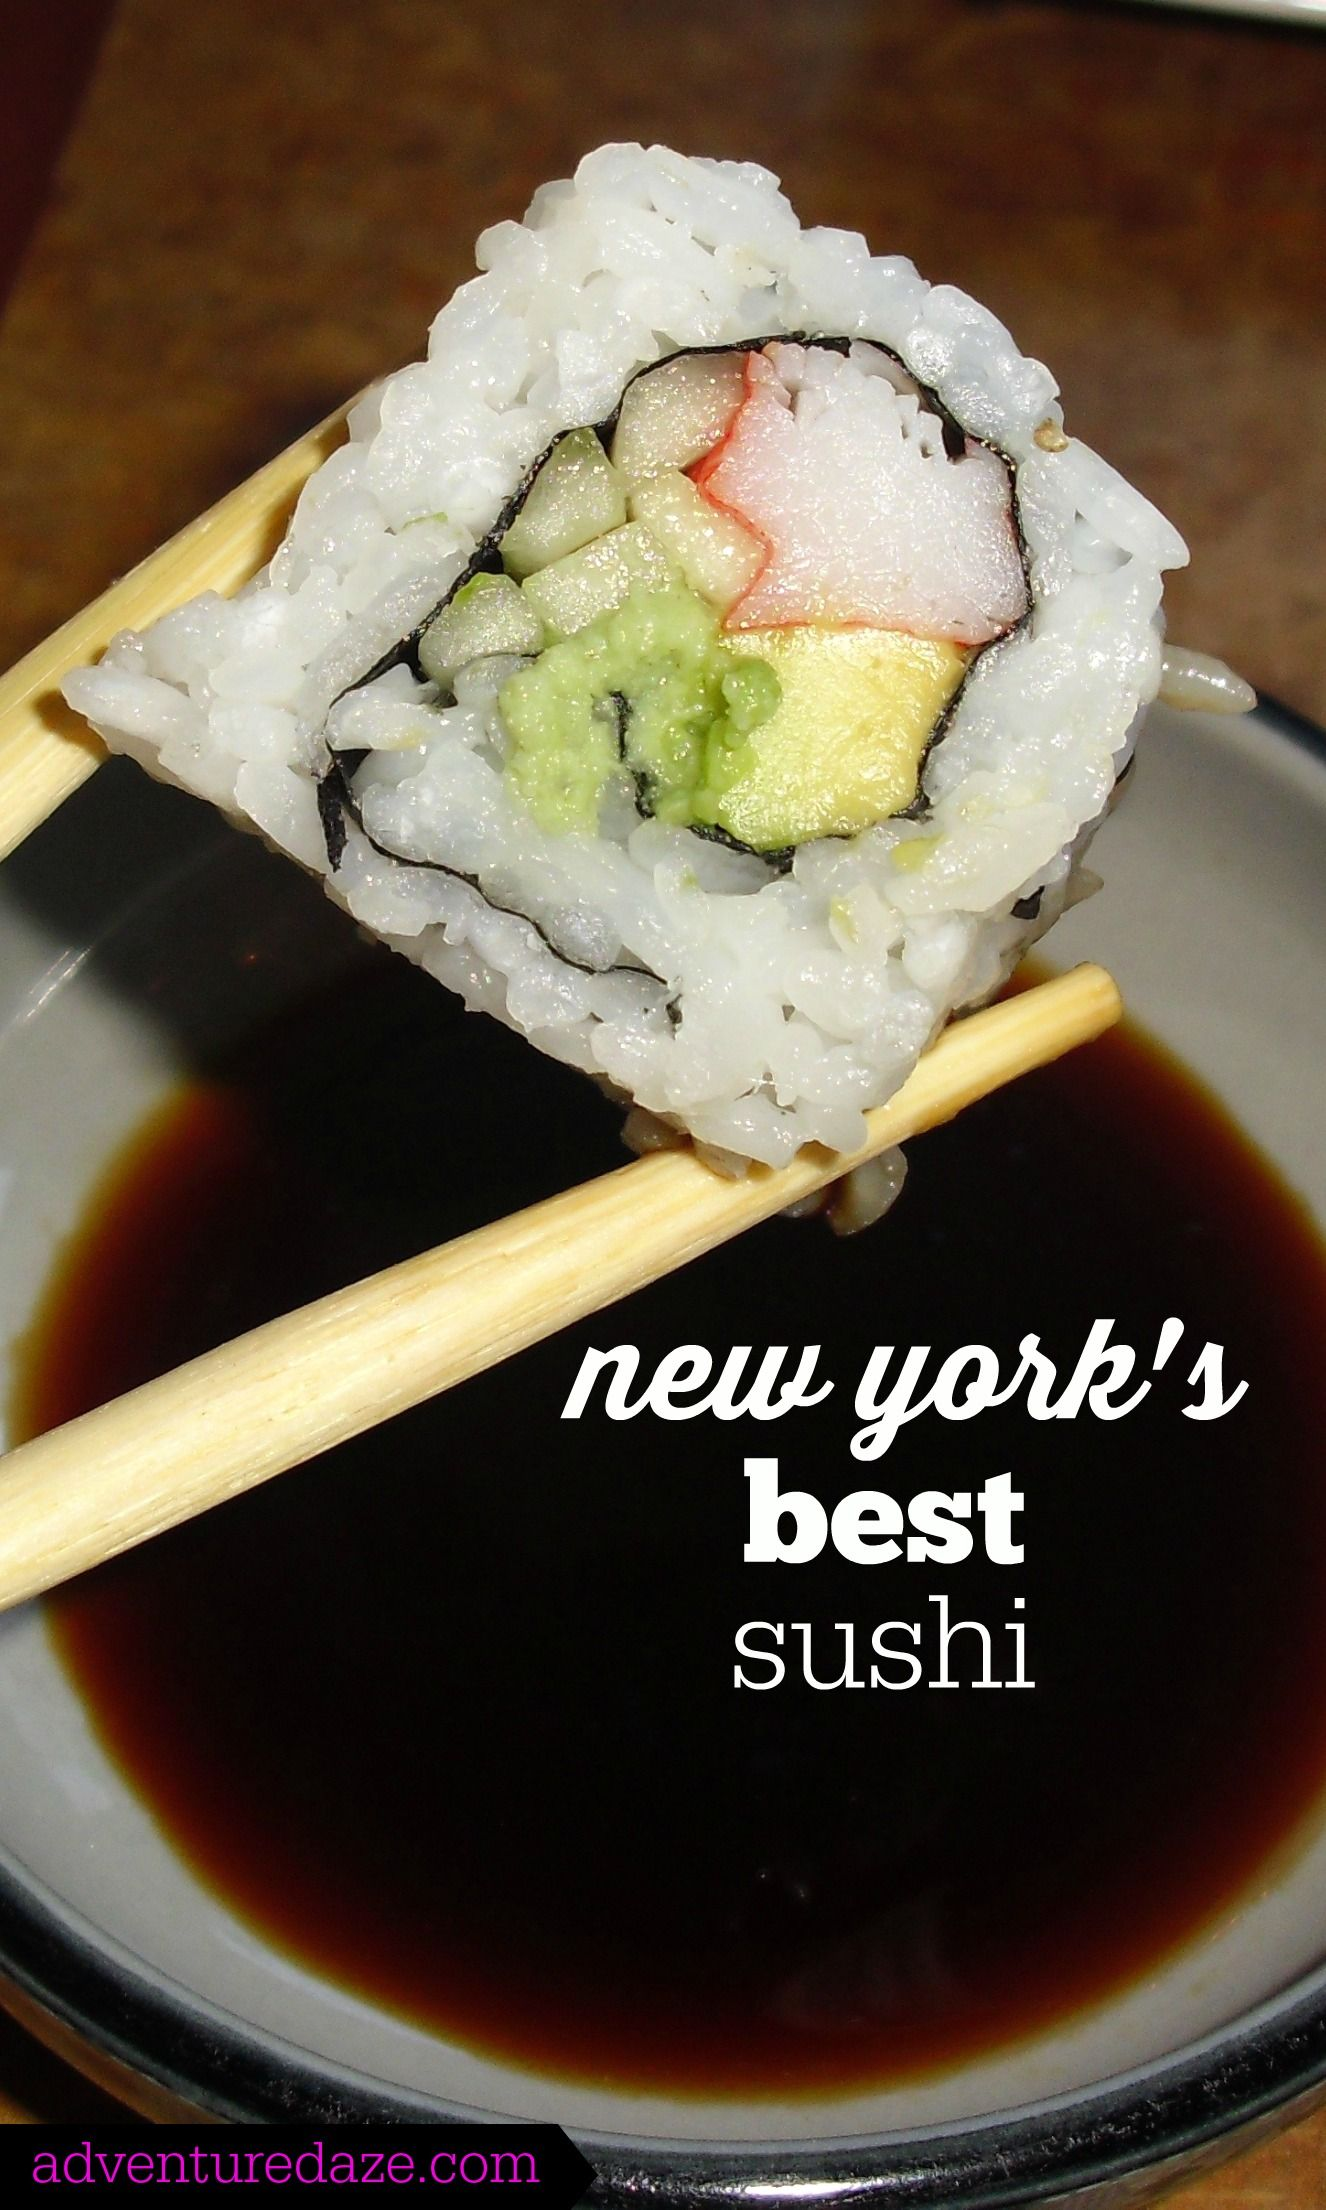 The Top 10 Best Sushi Restaurants In Nyc Best Sushi Foodie Travel Sushi Restaurants